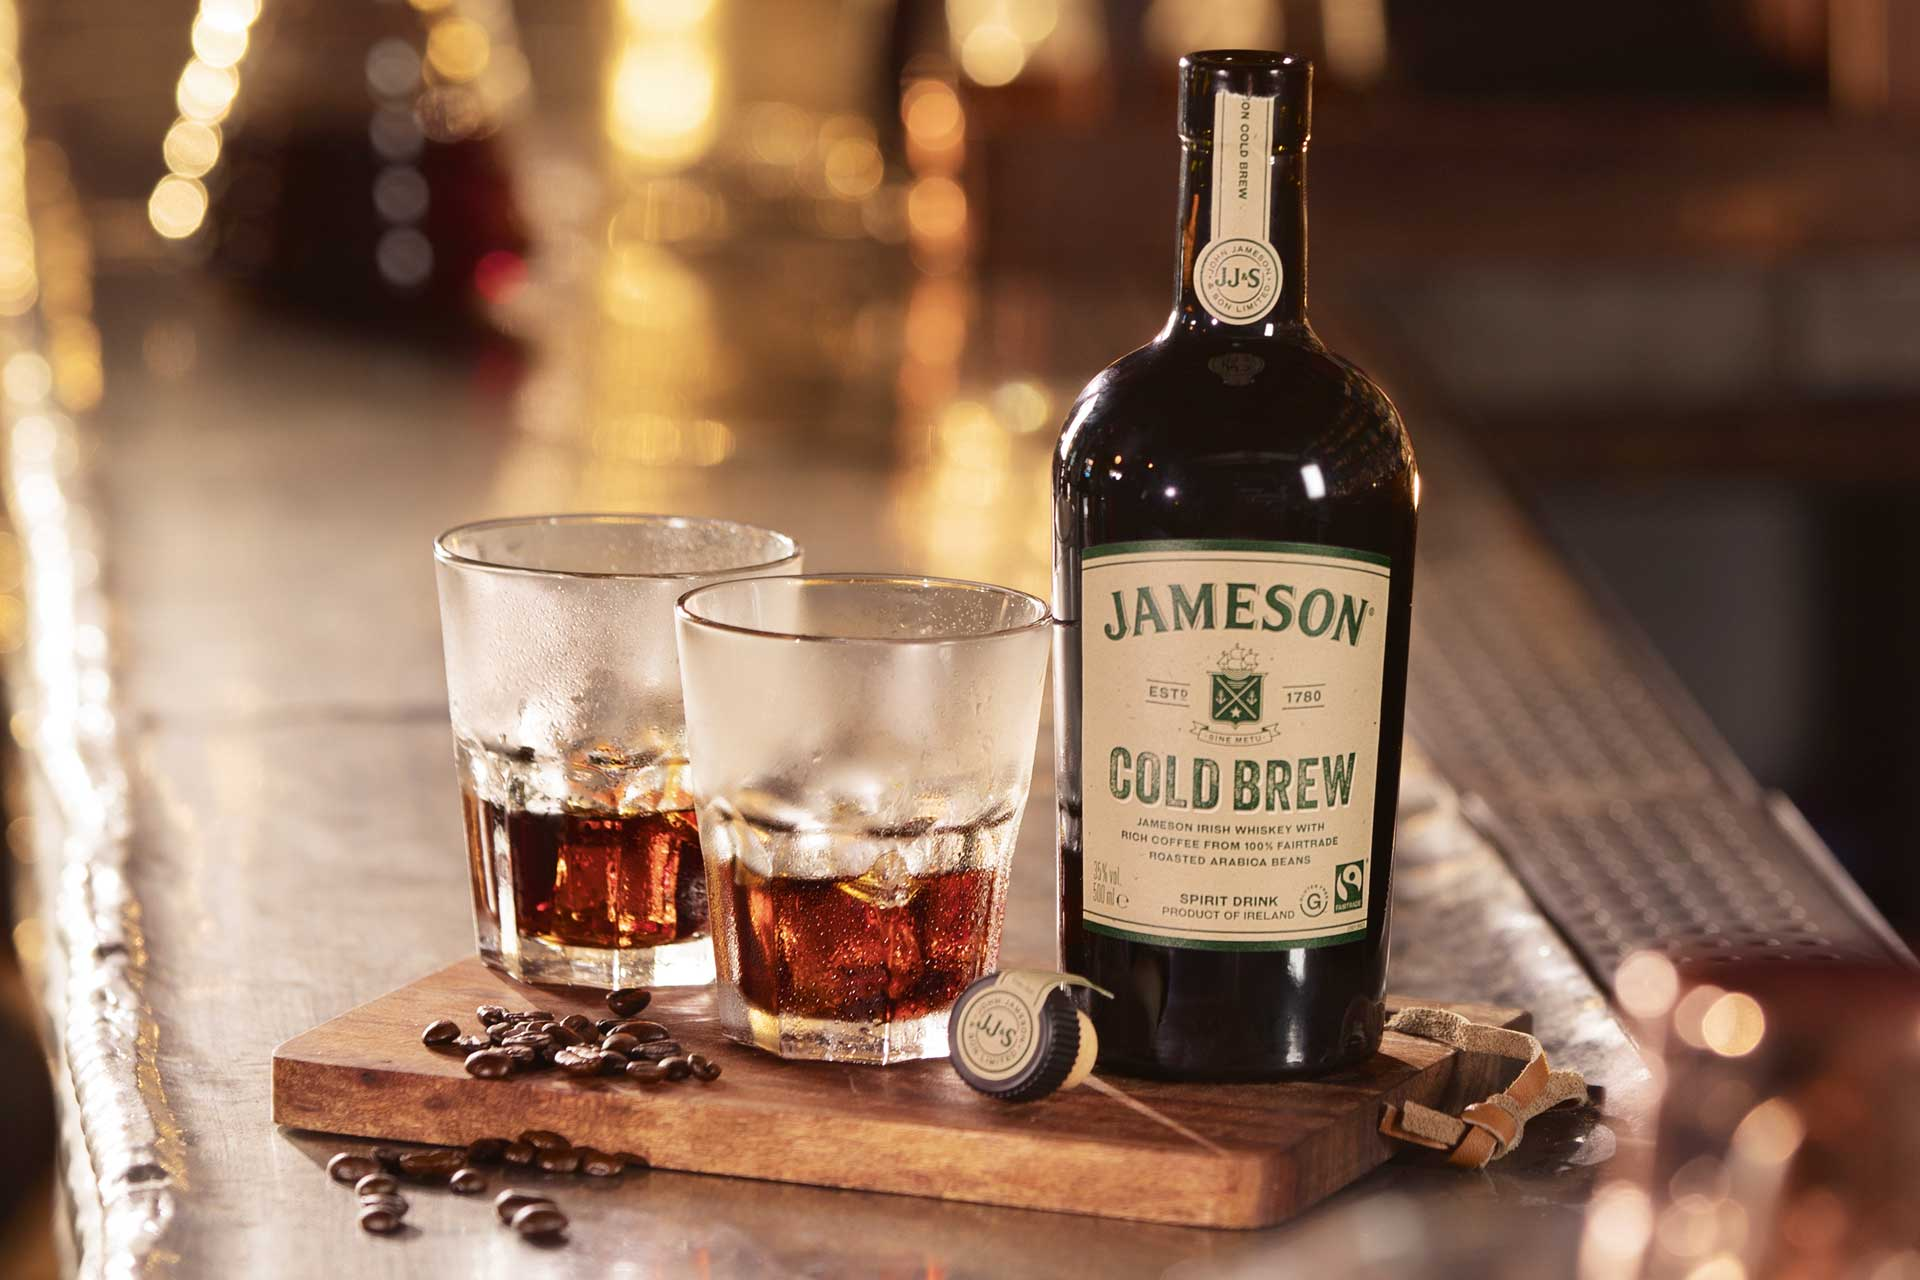 Jameson Cold Brew combines Irish whiskey with Arabica coffee beans